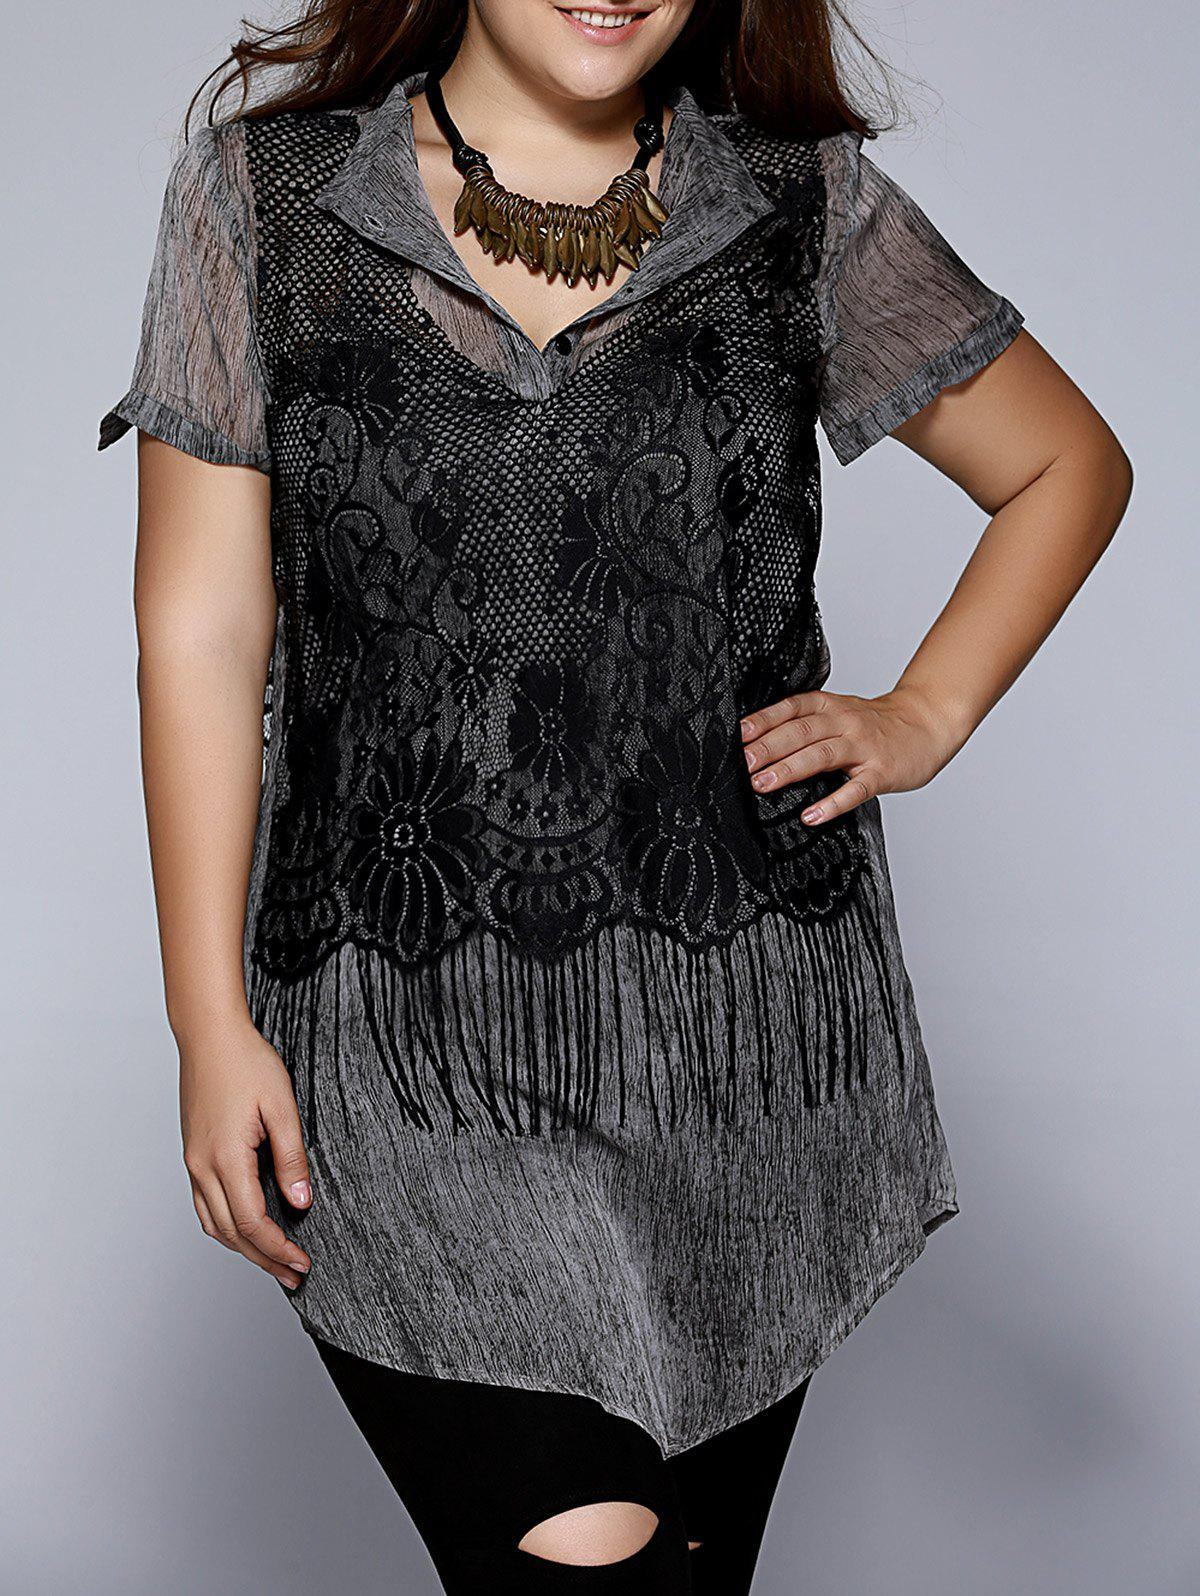 Oversized Chic Black Tank Top +Fringed Buttoned Blouse Twinset